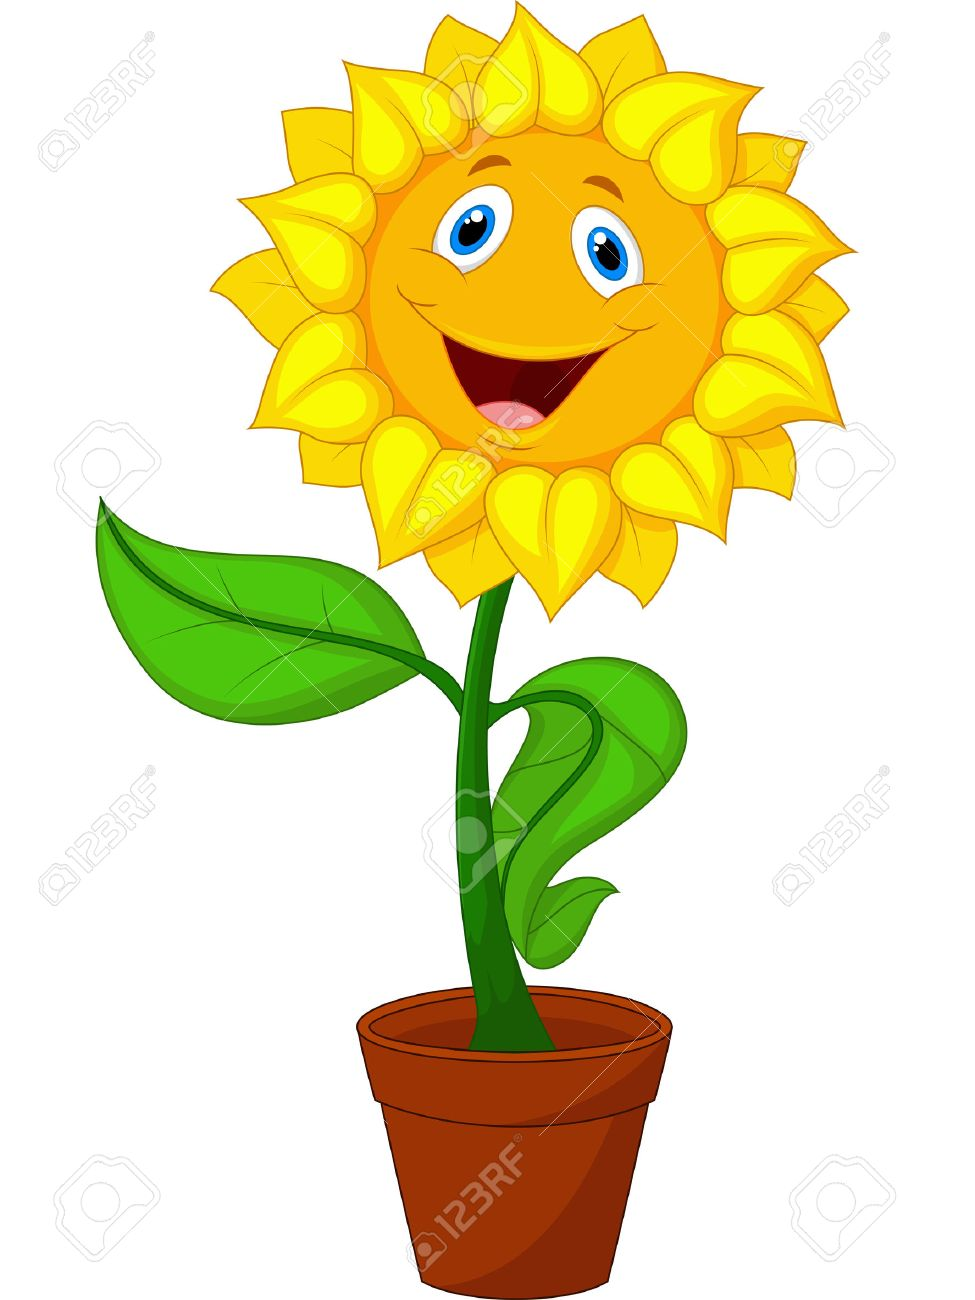 sunflower cartoon royalty free cliparts vectors and stock rh 123rf com sunflower cartoon pictures sunflower cartoon tumblr